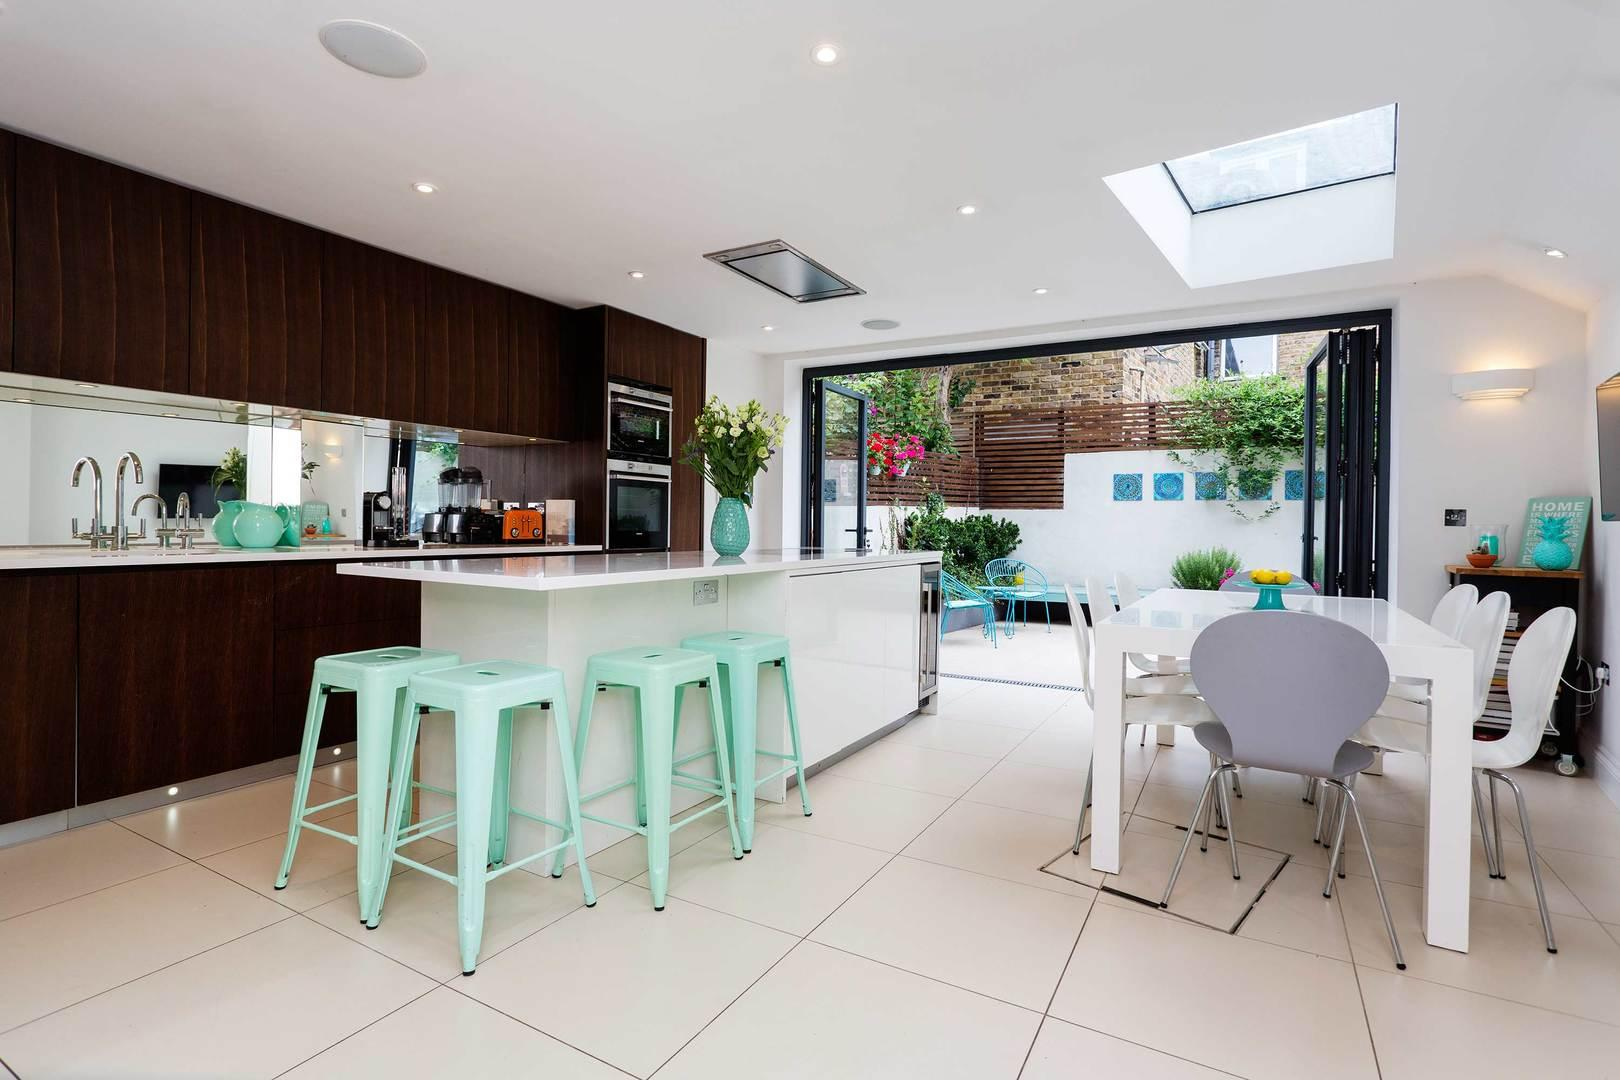 Property Image 1 - Stunning Tasteful House in Upmarket Fulham Location